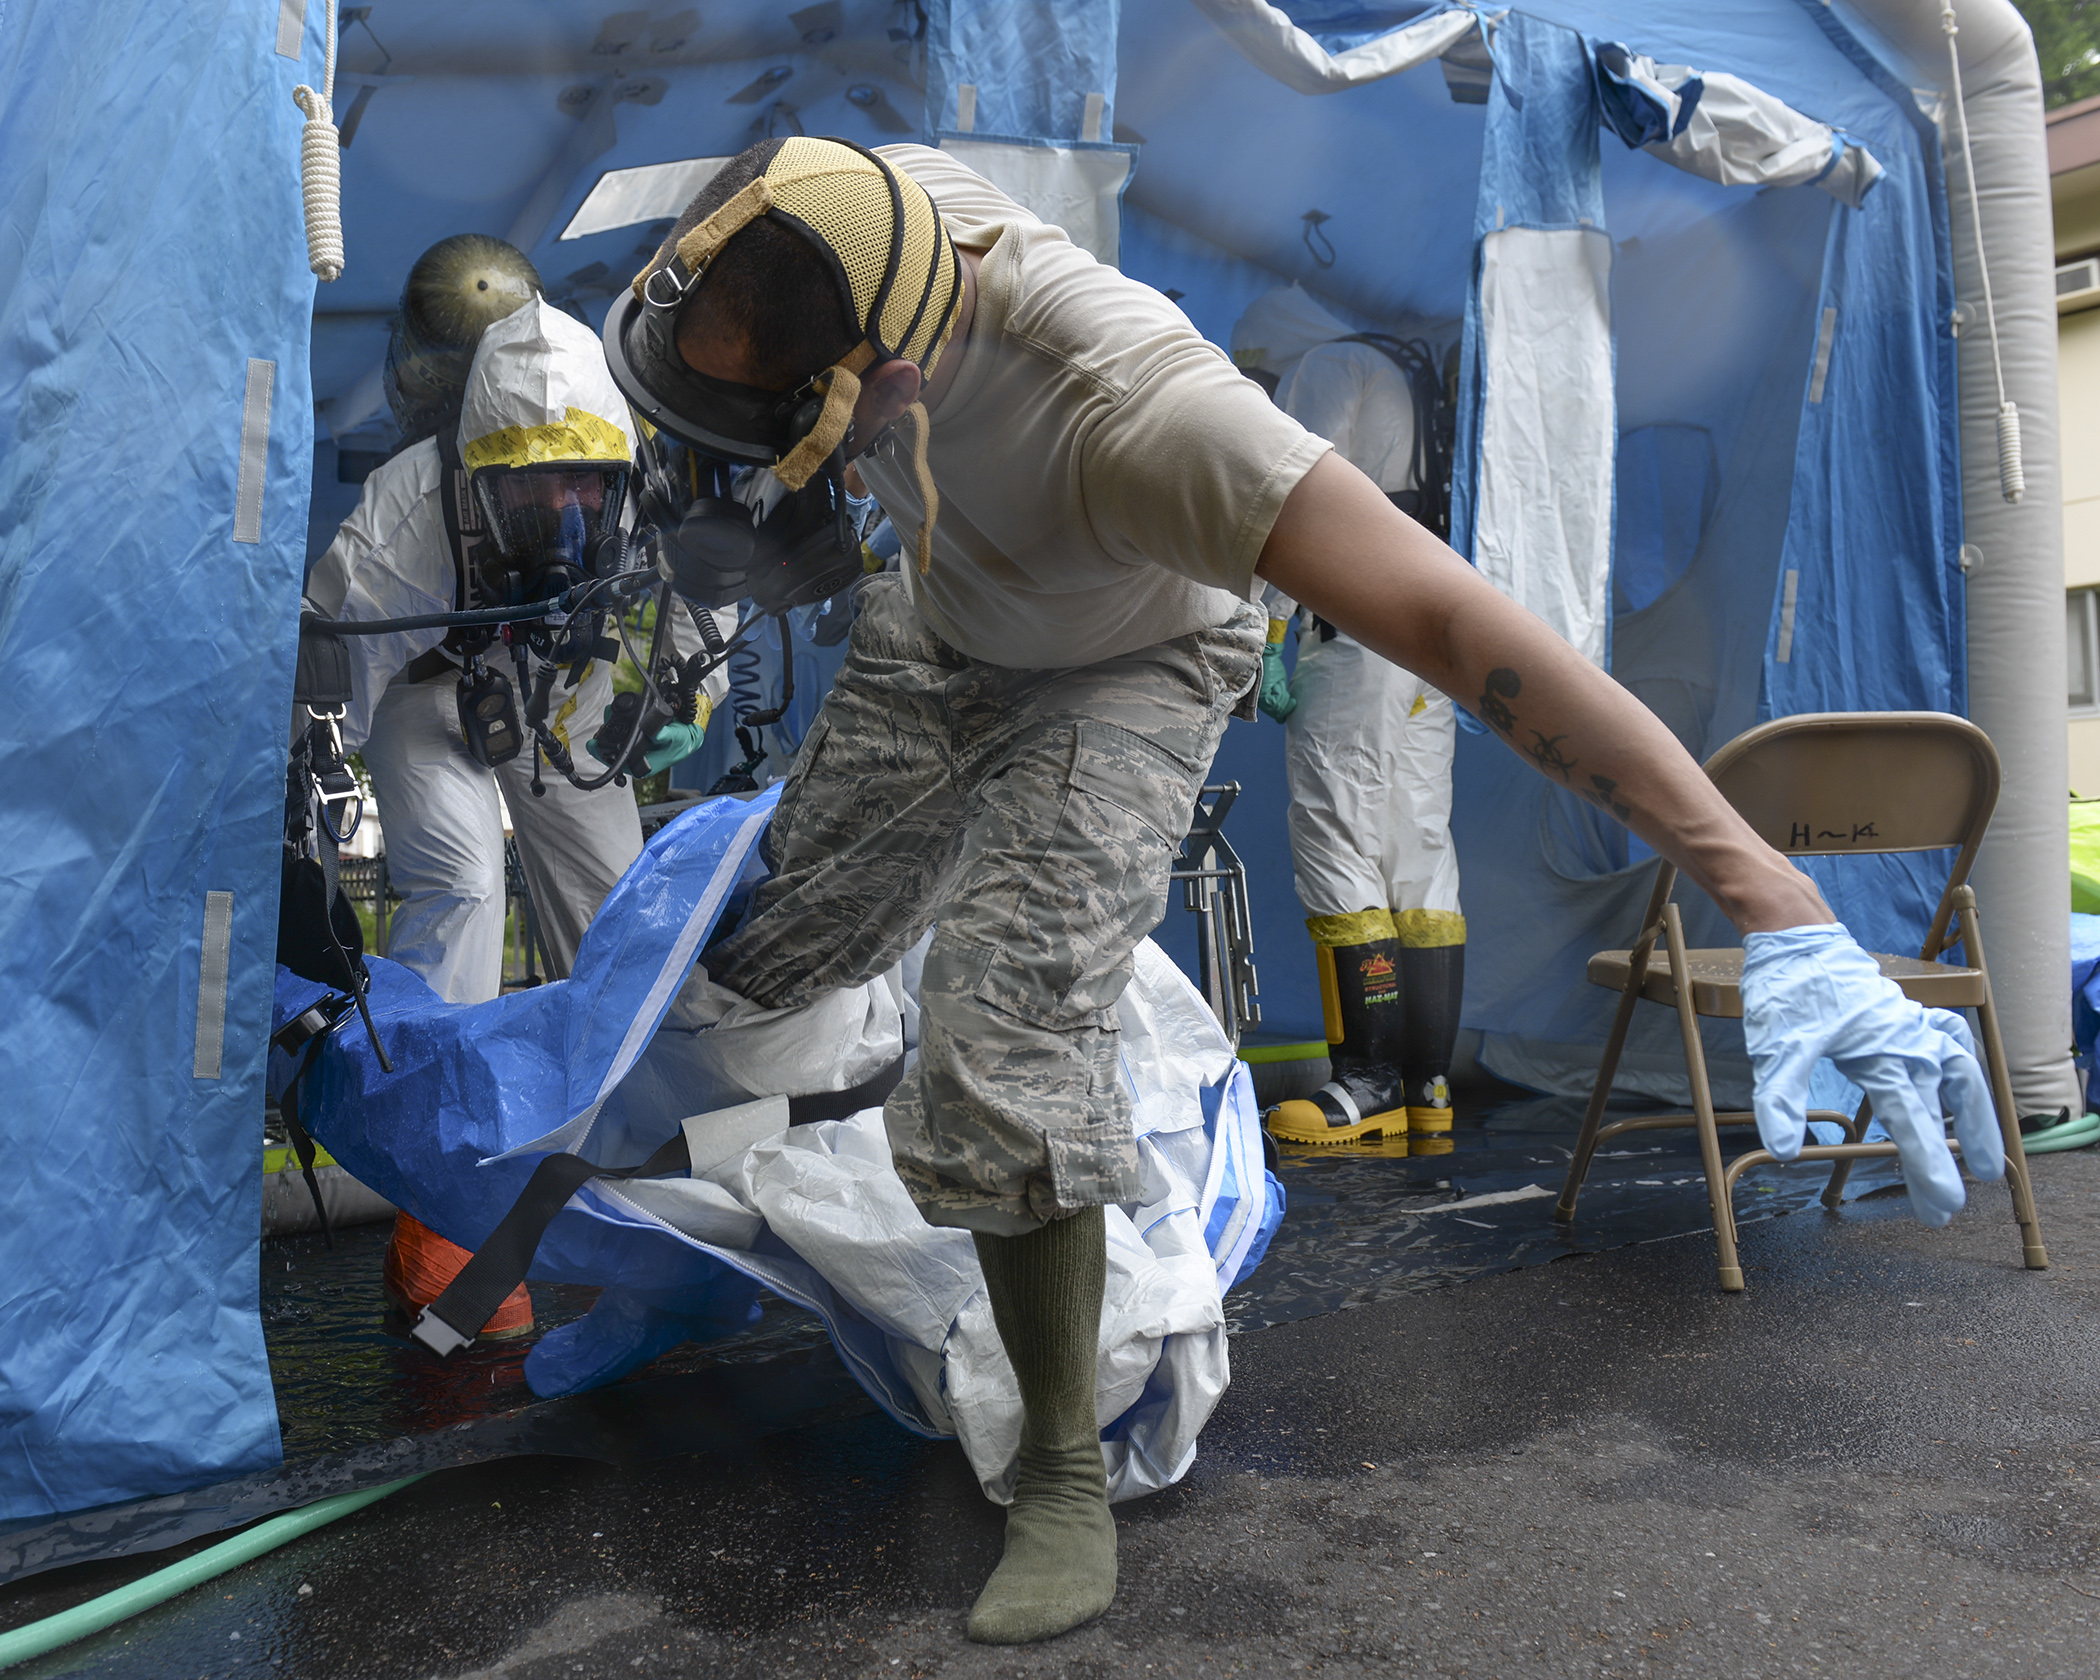 Staff Sgt. Sheraz Cedeno, 374th Civil Engineer Squadron NCO in charge of emergency management and operations, steps out of a protective suit after completing a mock chemical threat training scenario, May 6, 2015, at Yokota Air Base, Japan. Cedeno was part of a three-man team, which investigated a simulated environmental hazard scenario inside base housing. (U.S. Air Force photo by Airman 1st Class Elizabeth Baker/Released)